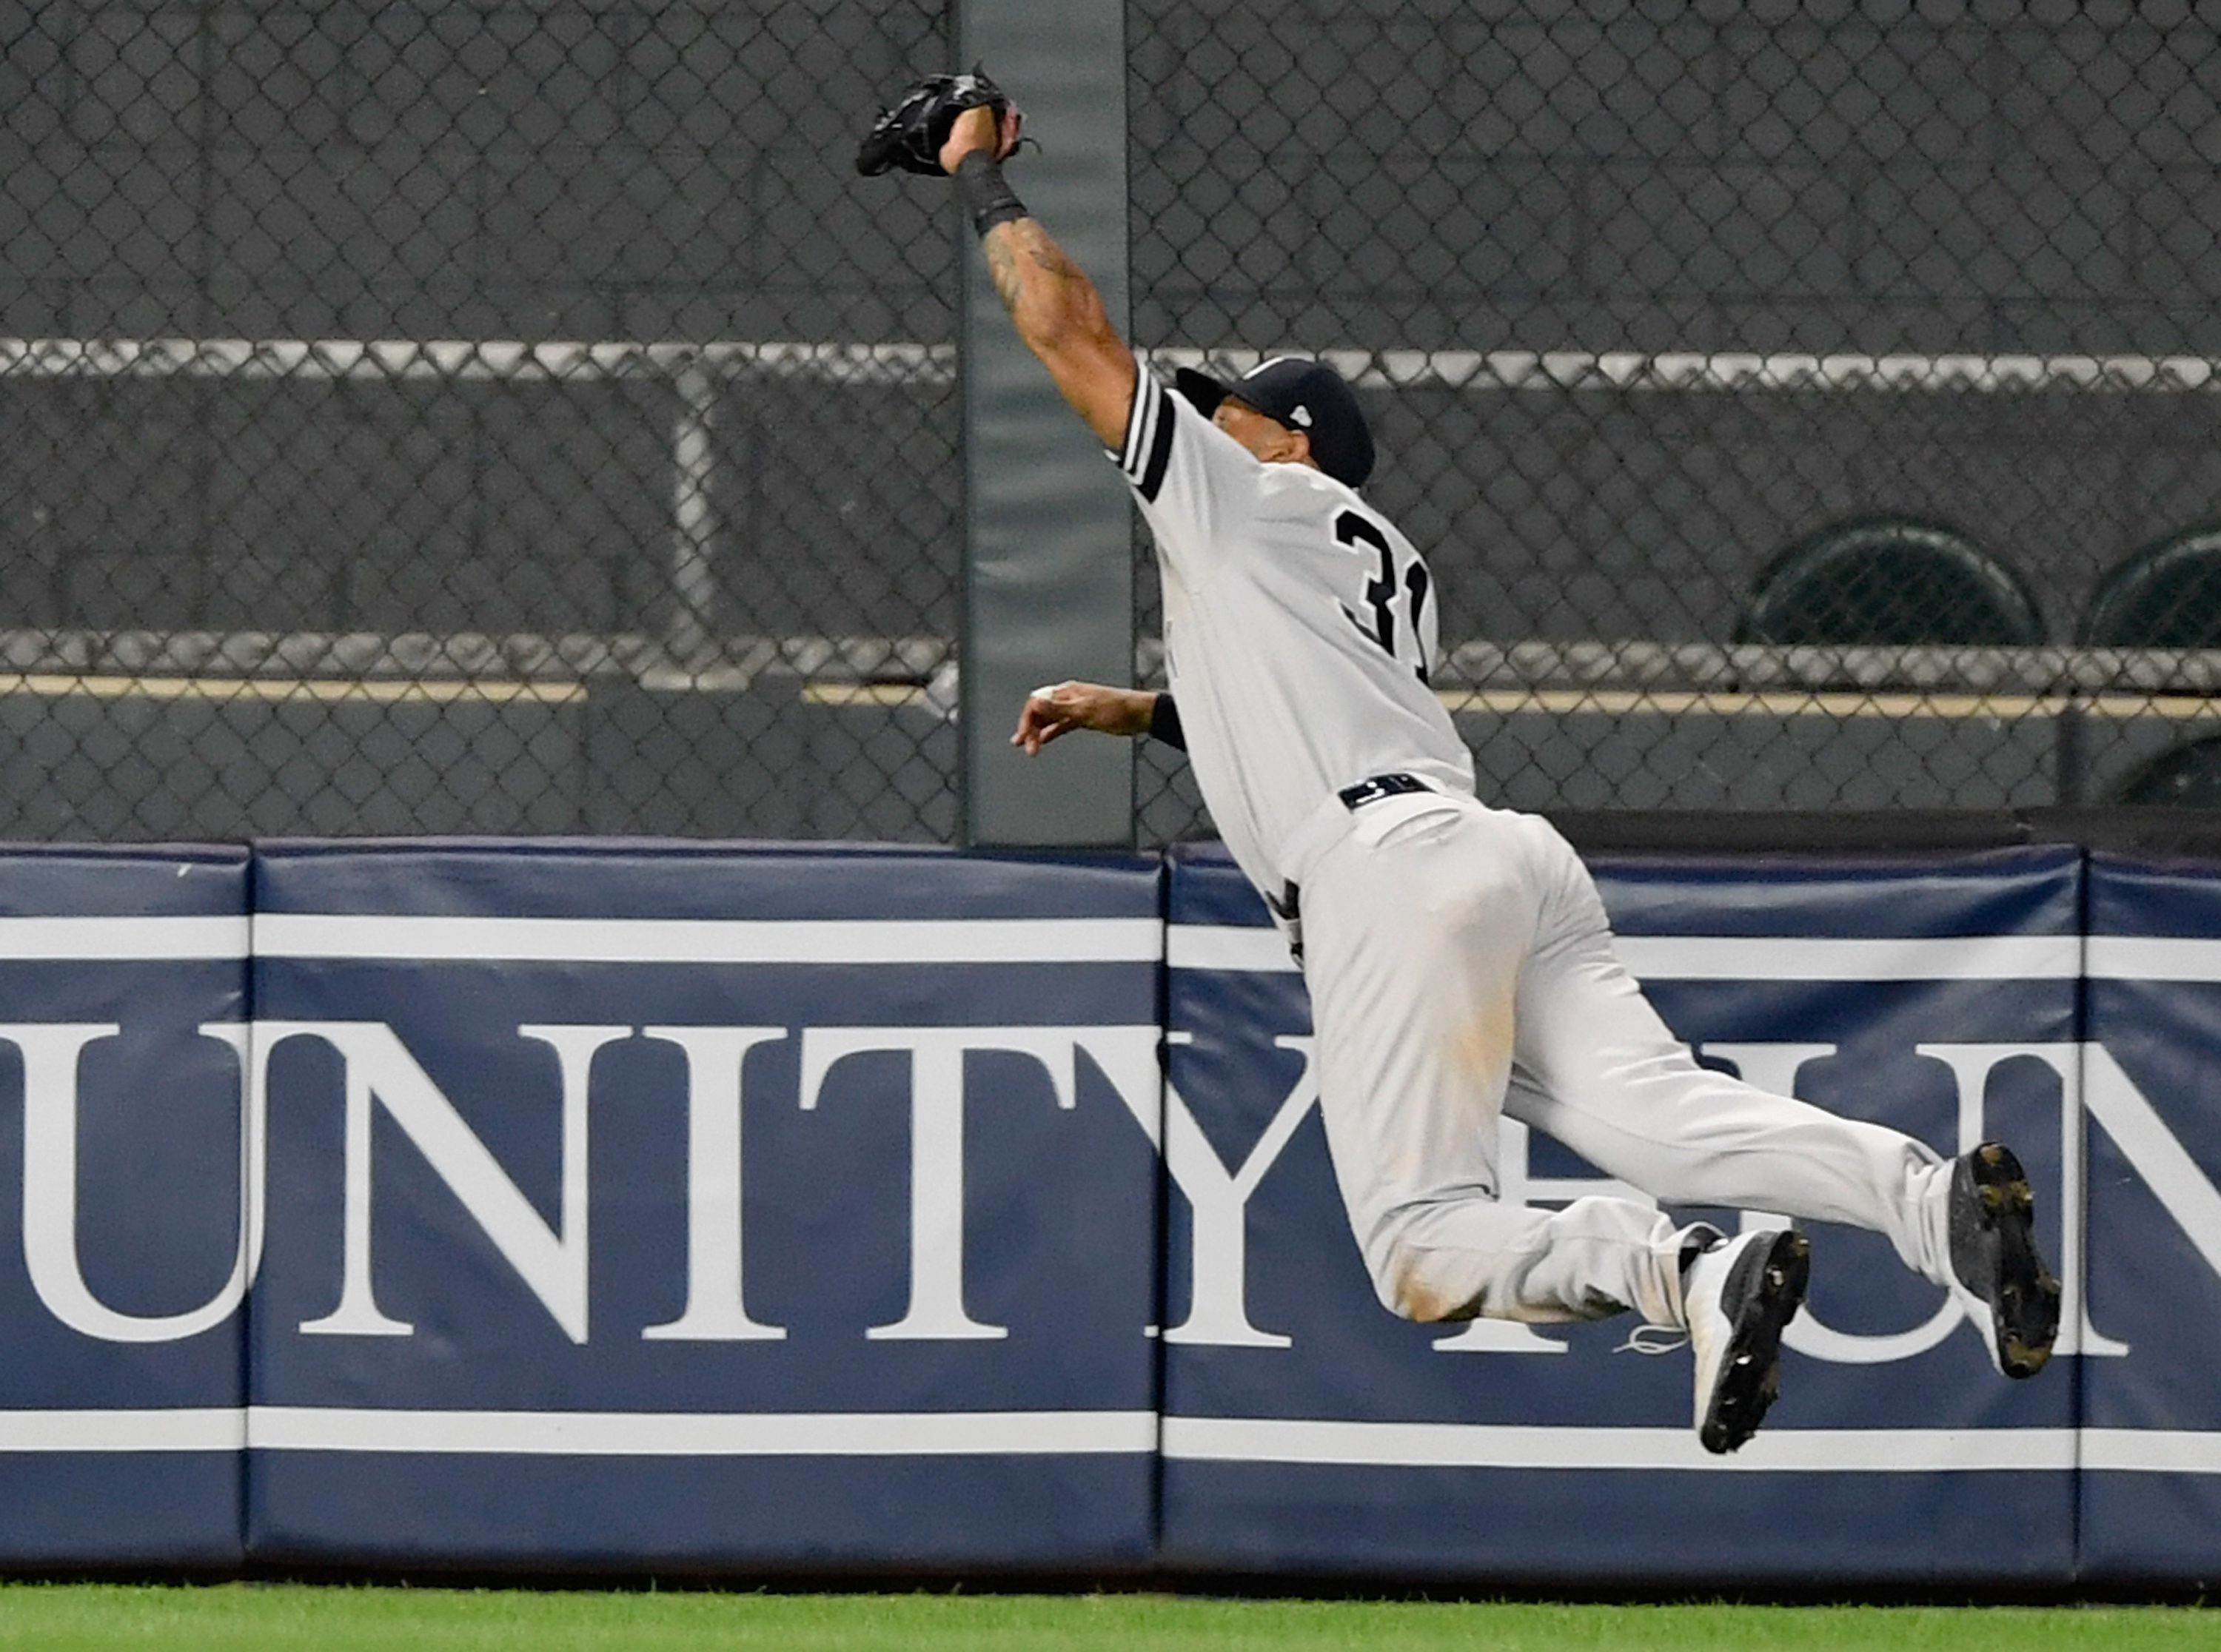 Aaron Hicks makes a diving catch